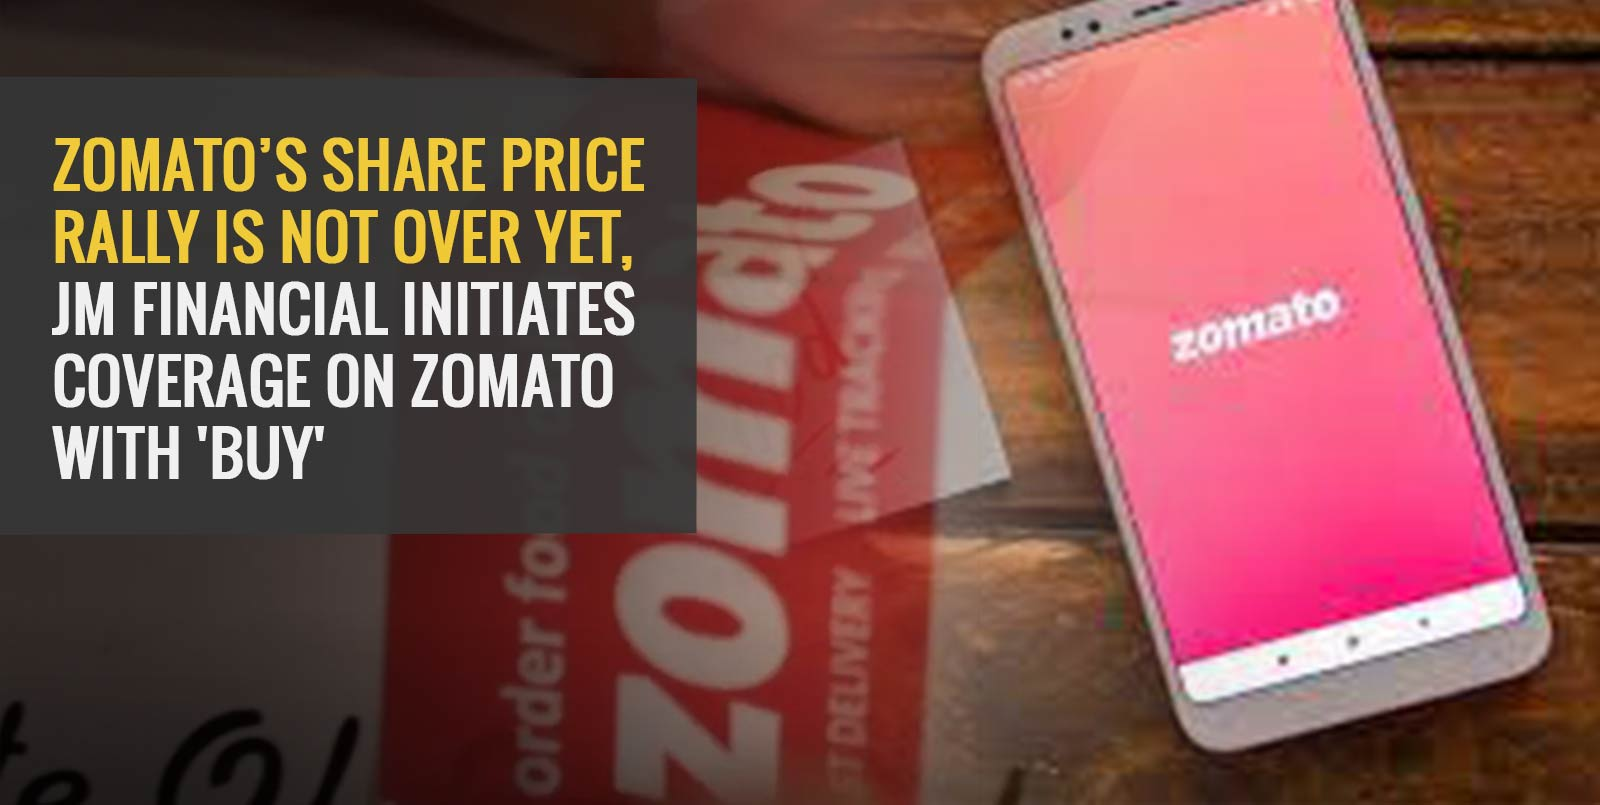 Zomato's Share Price Rally Is not over Yet, JM Financial Initiates Coverage on Zomato with 'Buy'